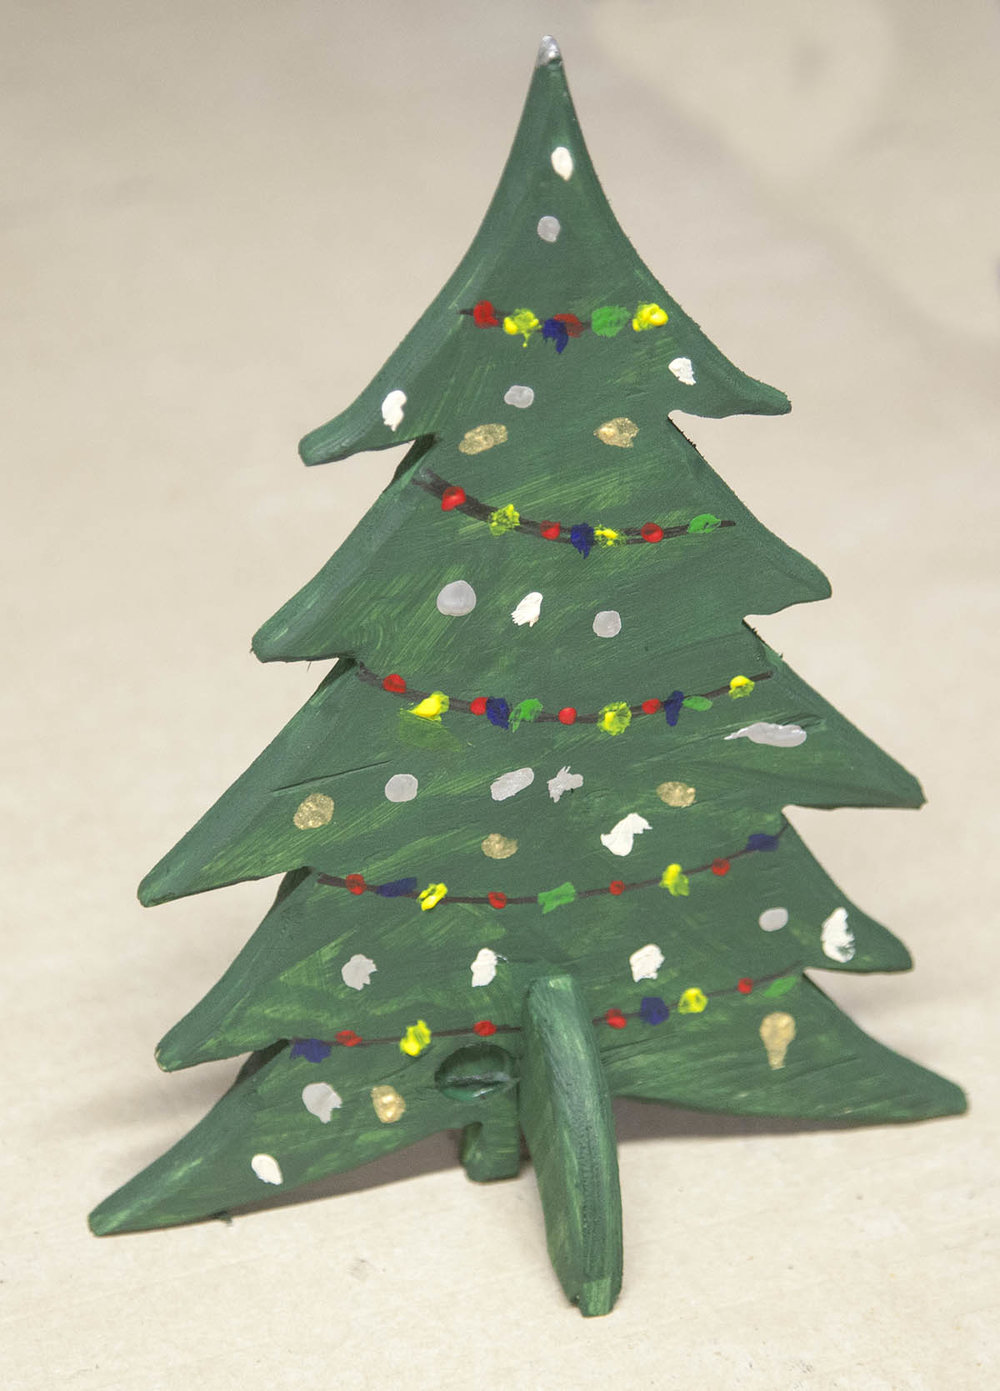 the simple christmas tree project is born its a simple tree cut out of a 9 x 11 x 12 piece of scrap plywood